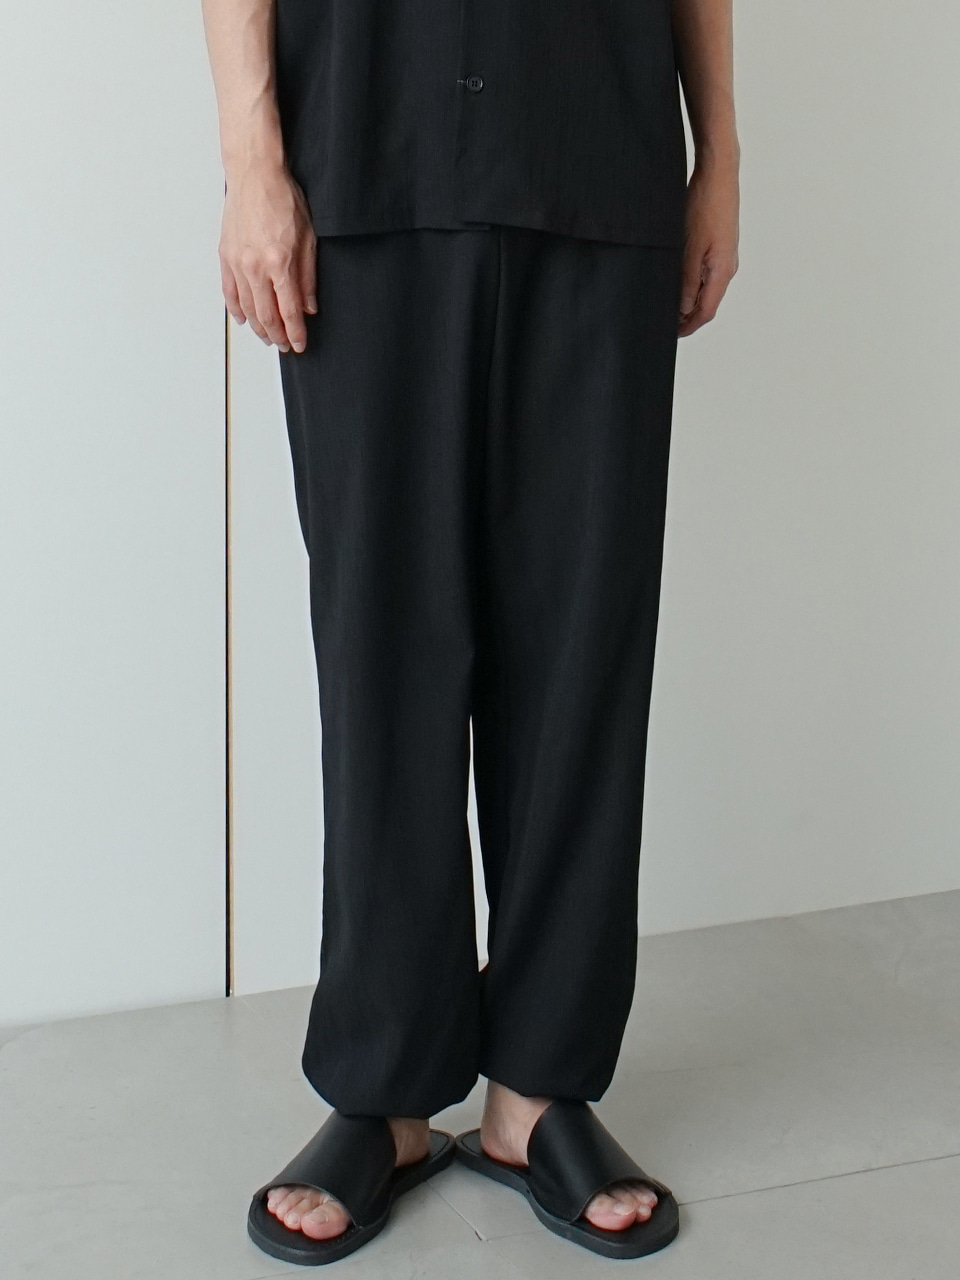 Treat Pleats Jogger Pants (2color)